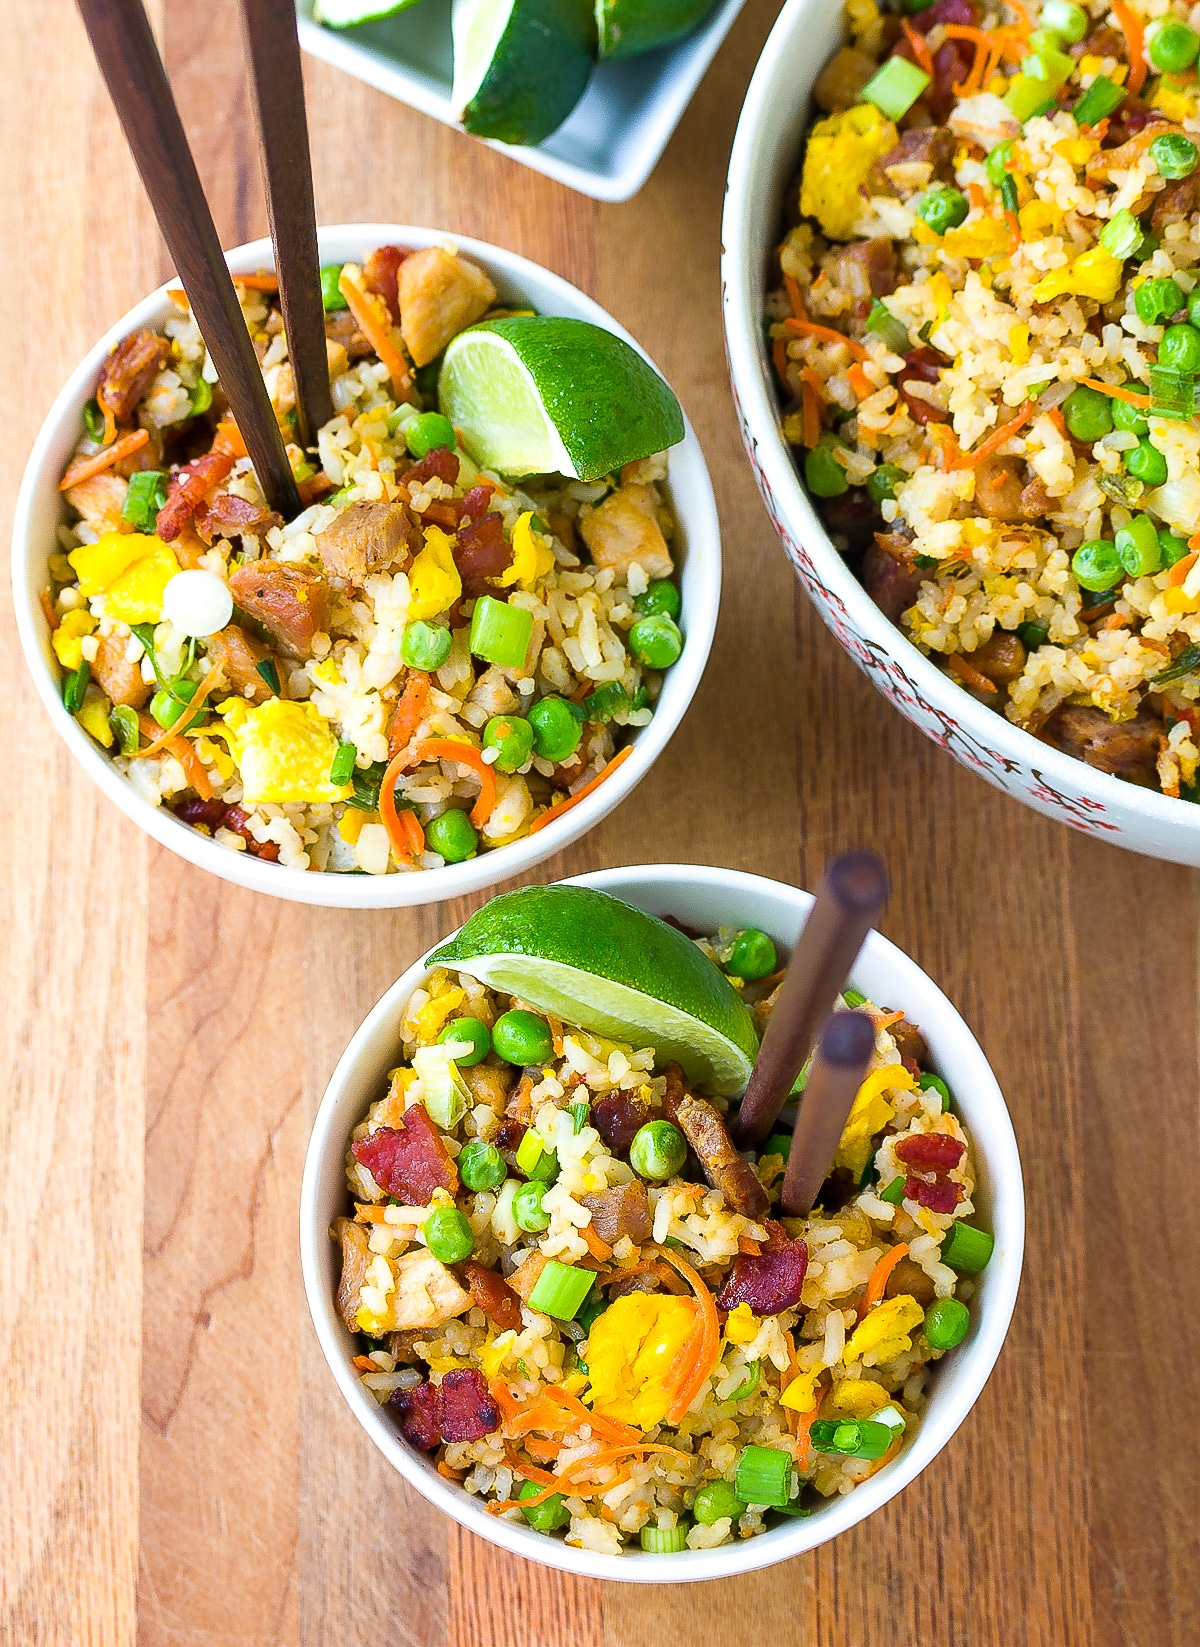 Chinese Pork Fried Rice Recipe #ASpicyPerspective #rice #fried #pork #bacon #asian #hawaiian